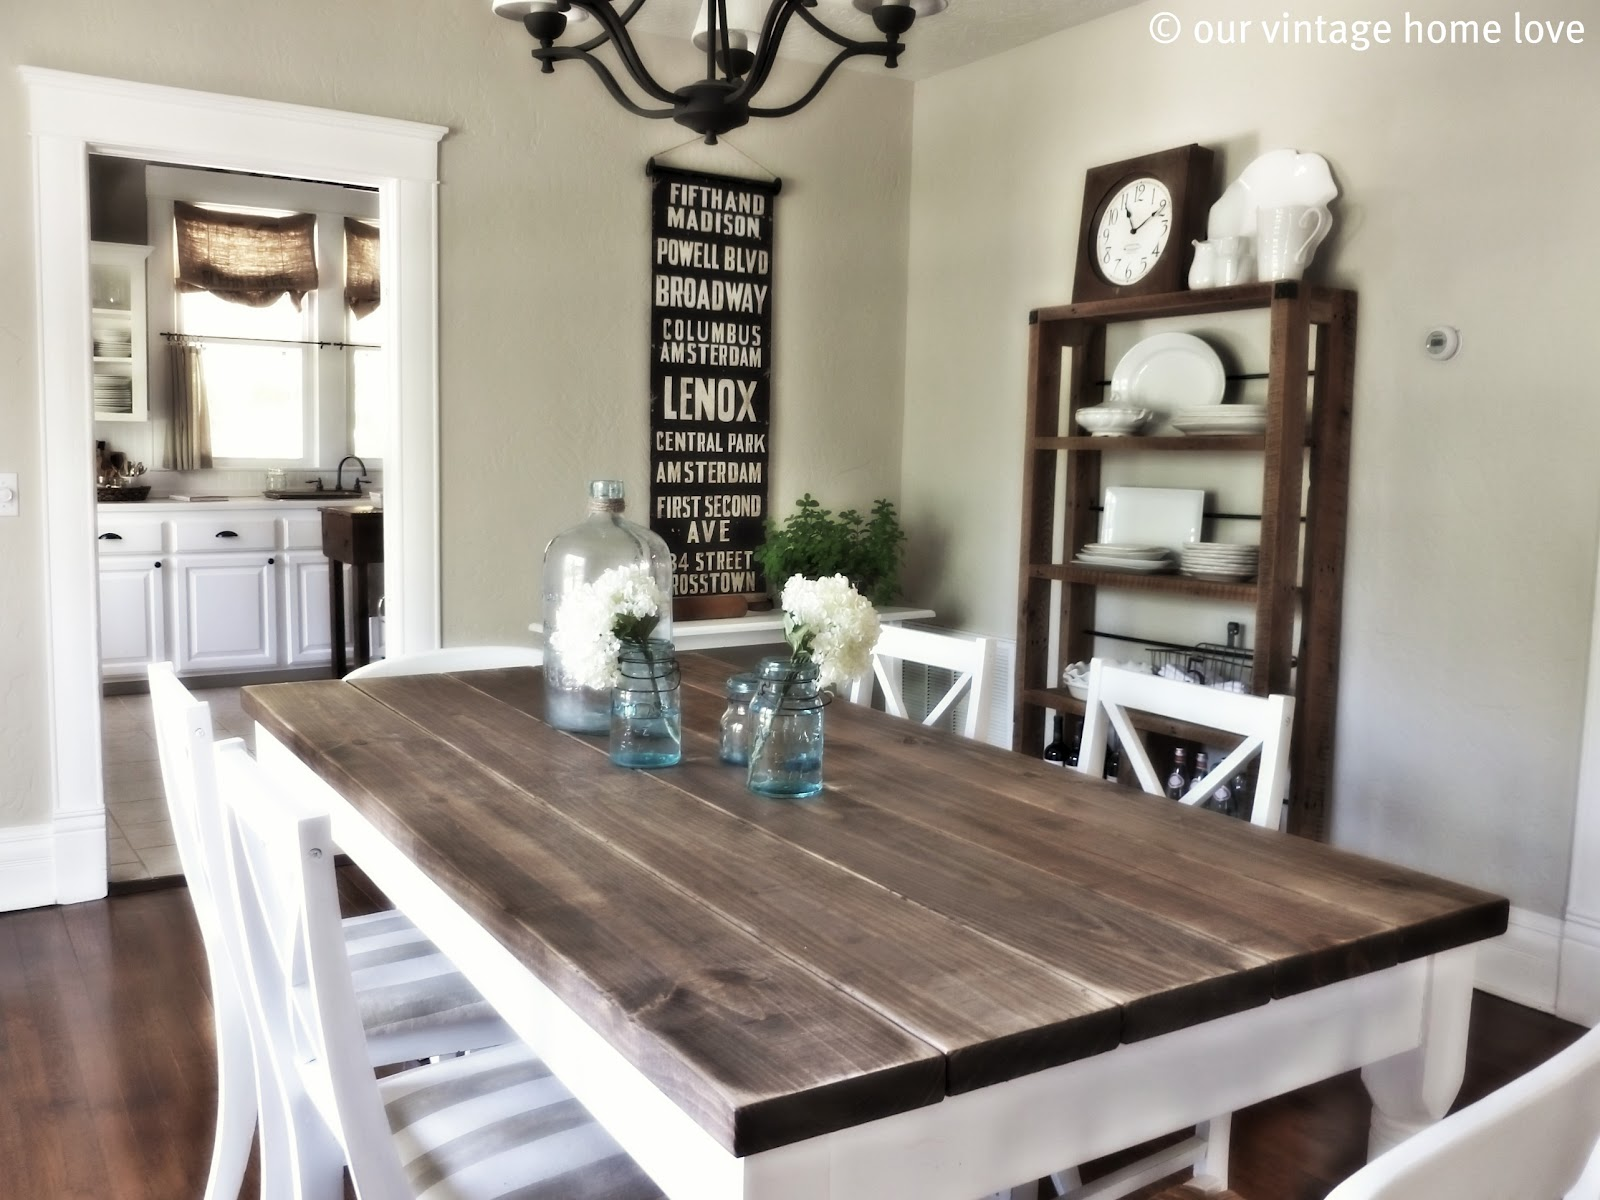 our vintage home love Dining Room Table